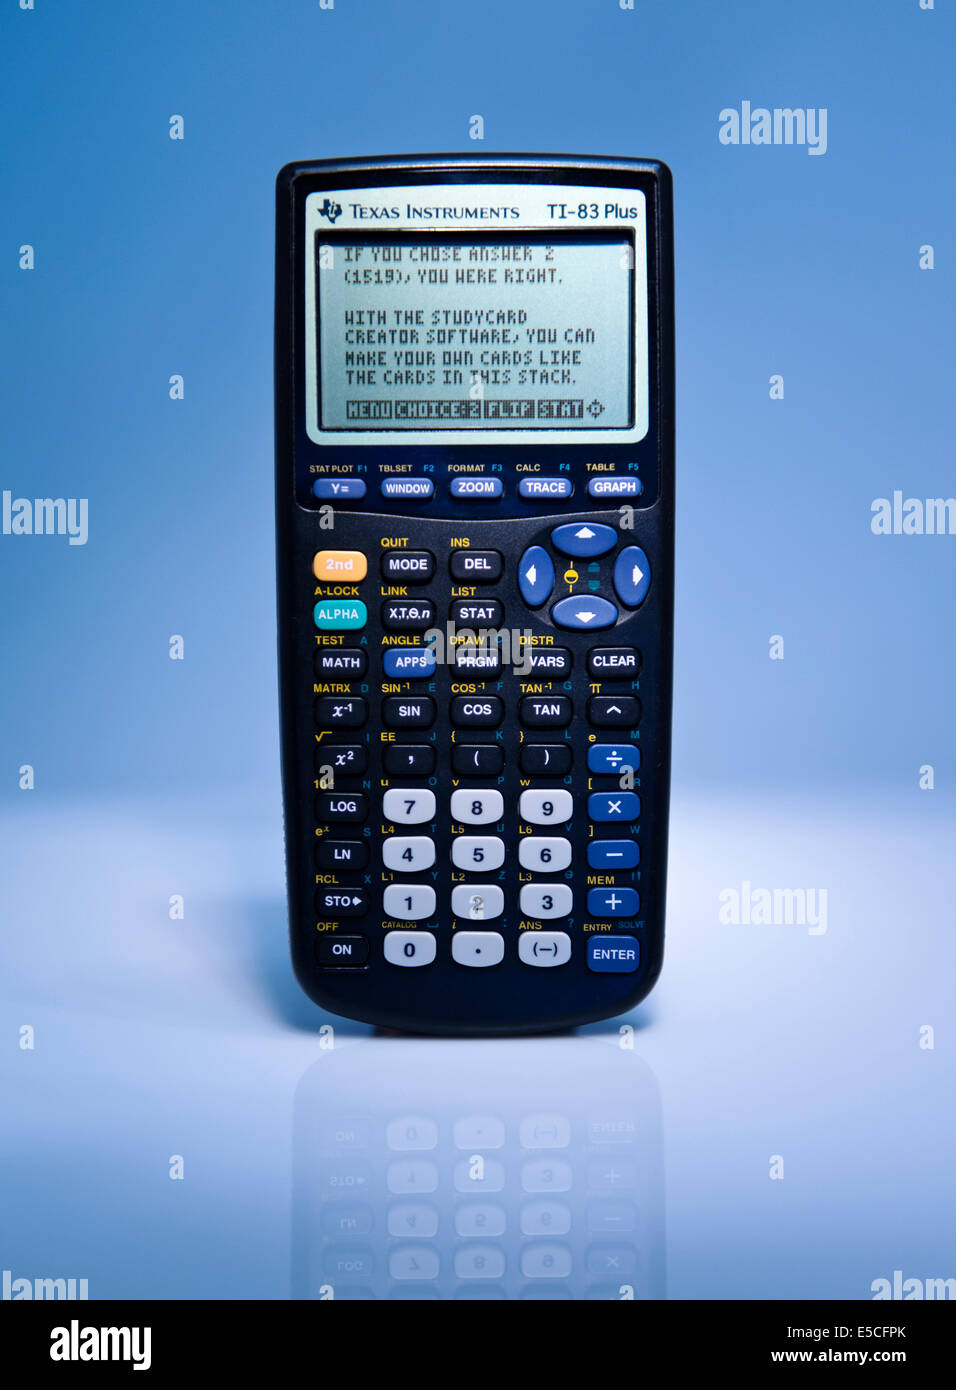 Detail front view of a Texas Instruments TI-83 Plus Graphing Calculator. - Stock Image